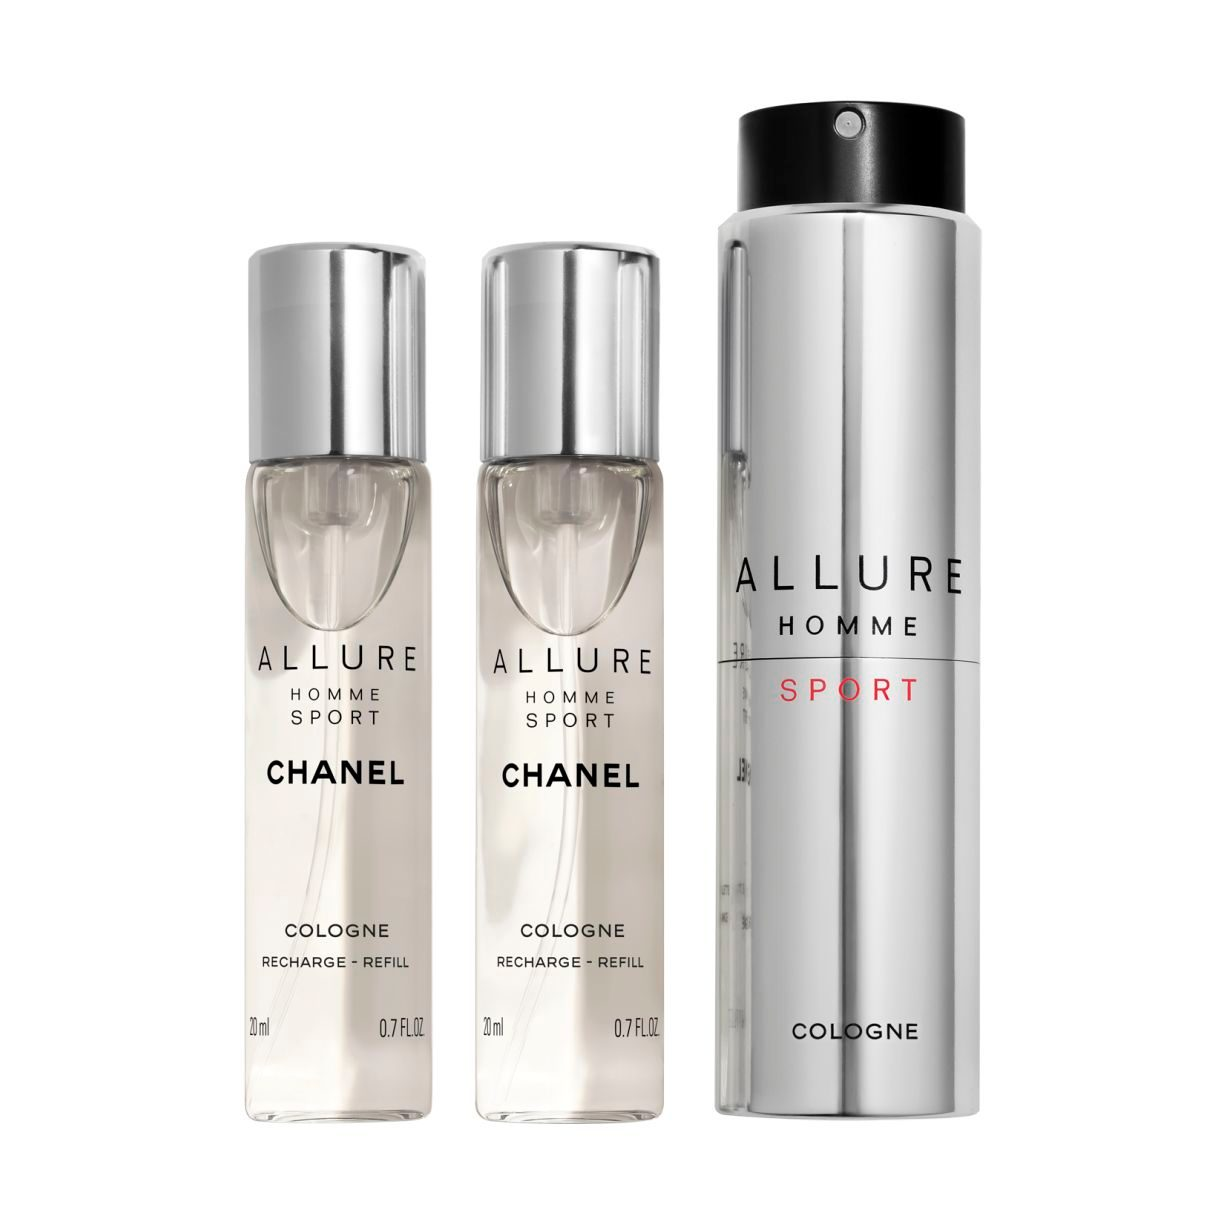 Allure Homme Sport Allure Homme Sport Chanel